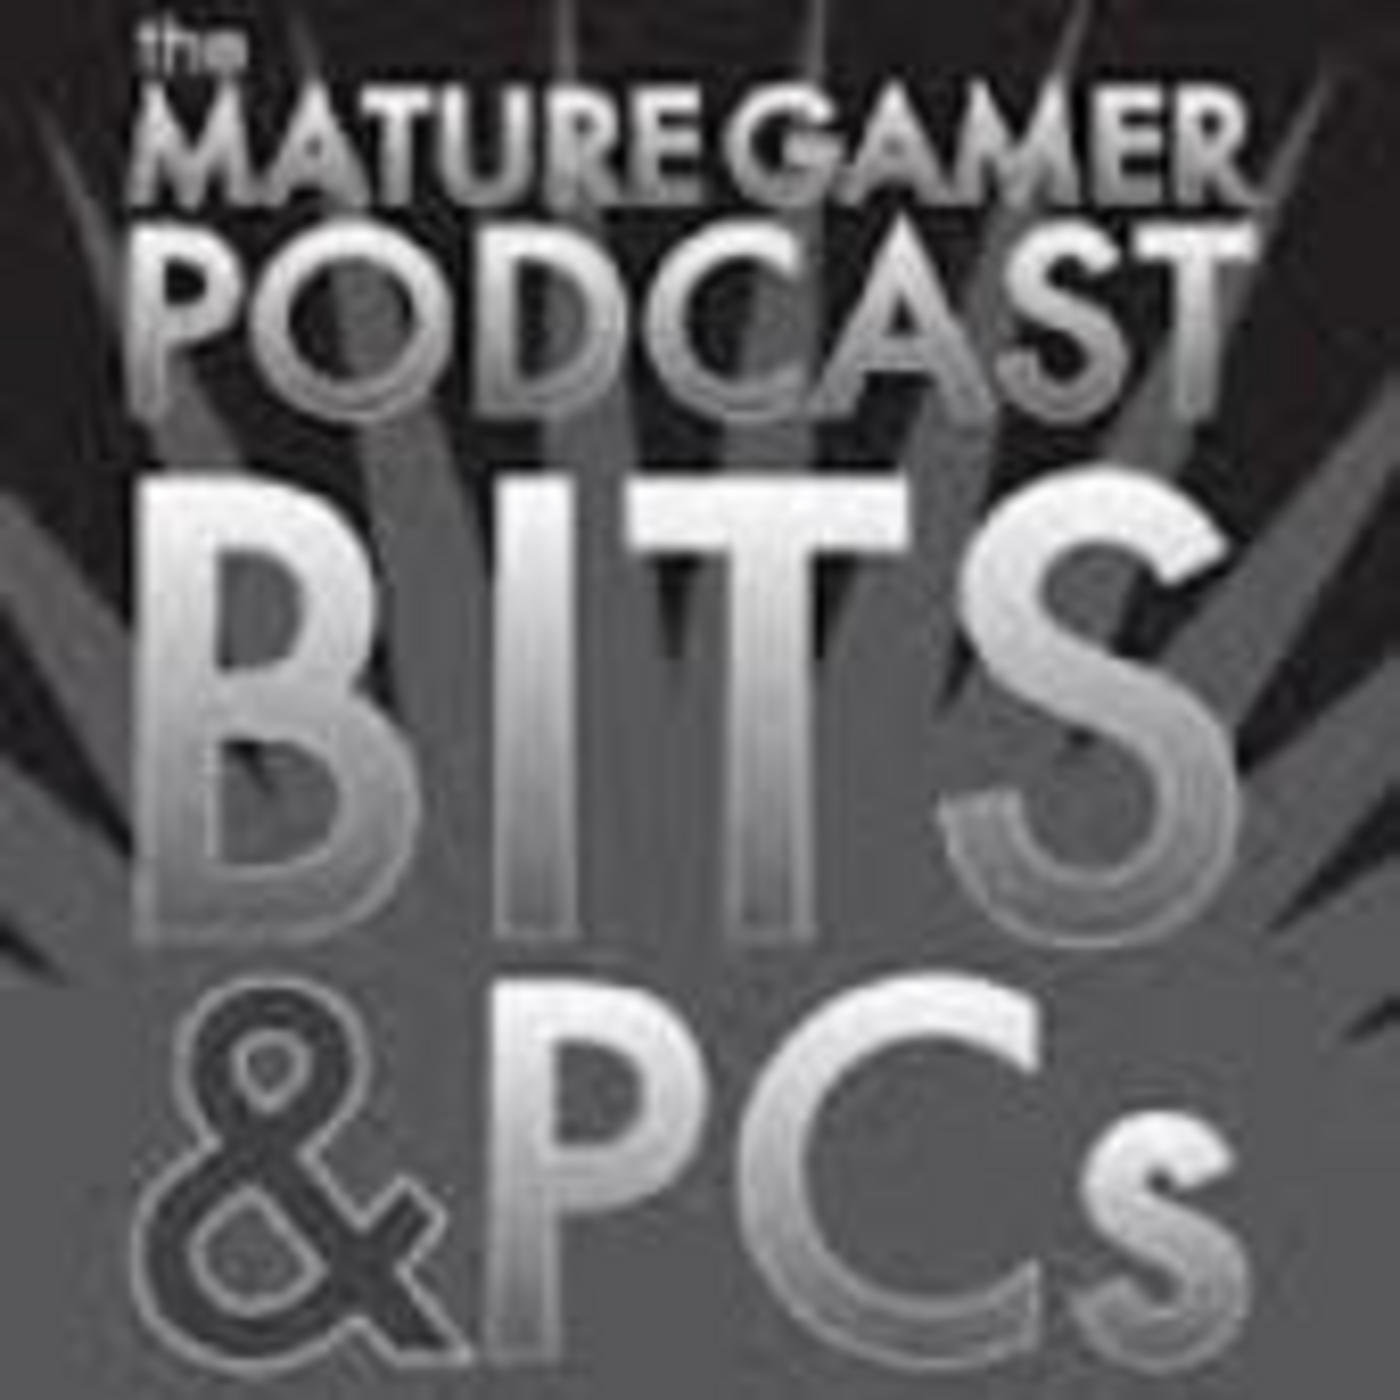 Bits and PC's - Episode 86